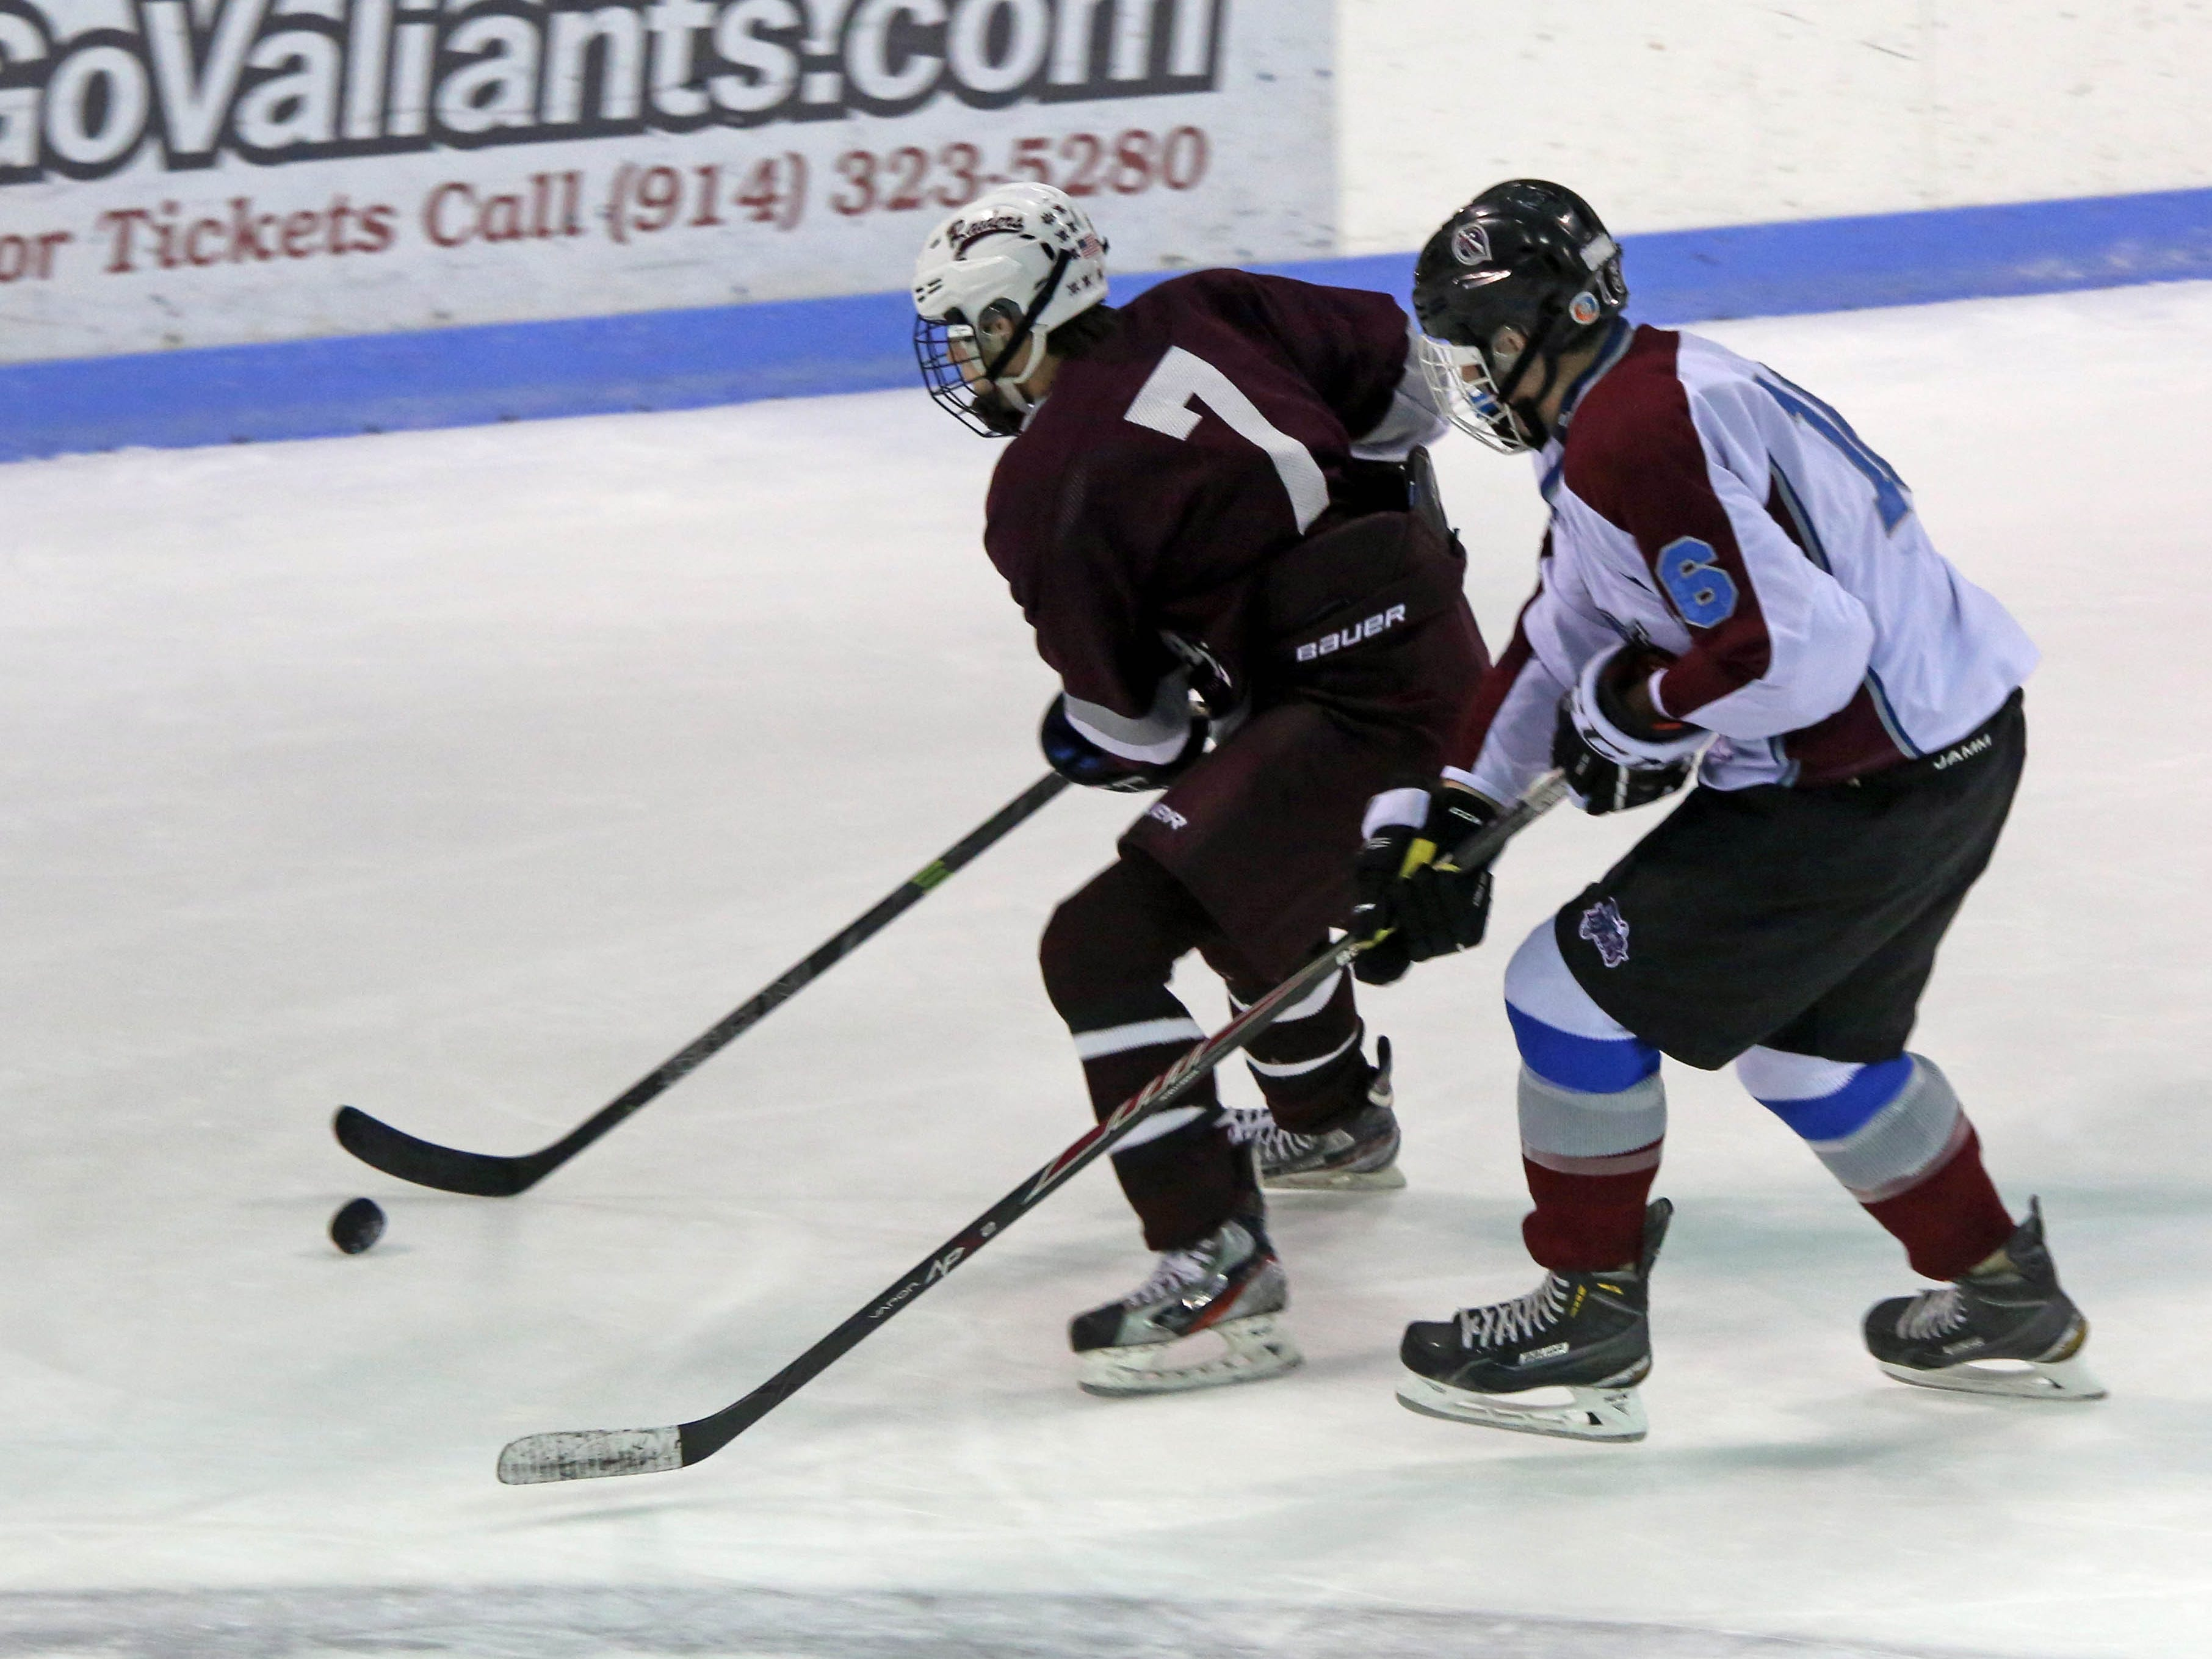 Scarsdale's Brandon Bank (7) gains control of the puck over Rye Town/Harrison's William Pizzutello (6) during boys hockey at Rye Playland on Jan. 12, 2015.